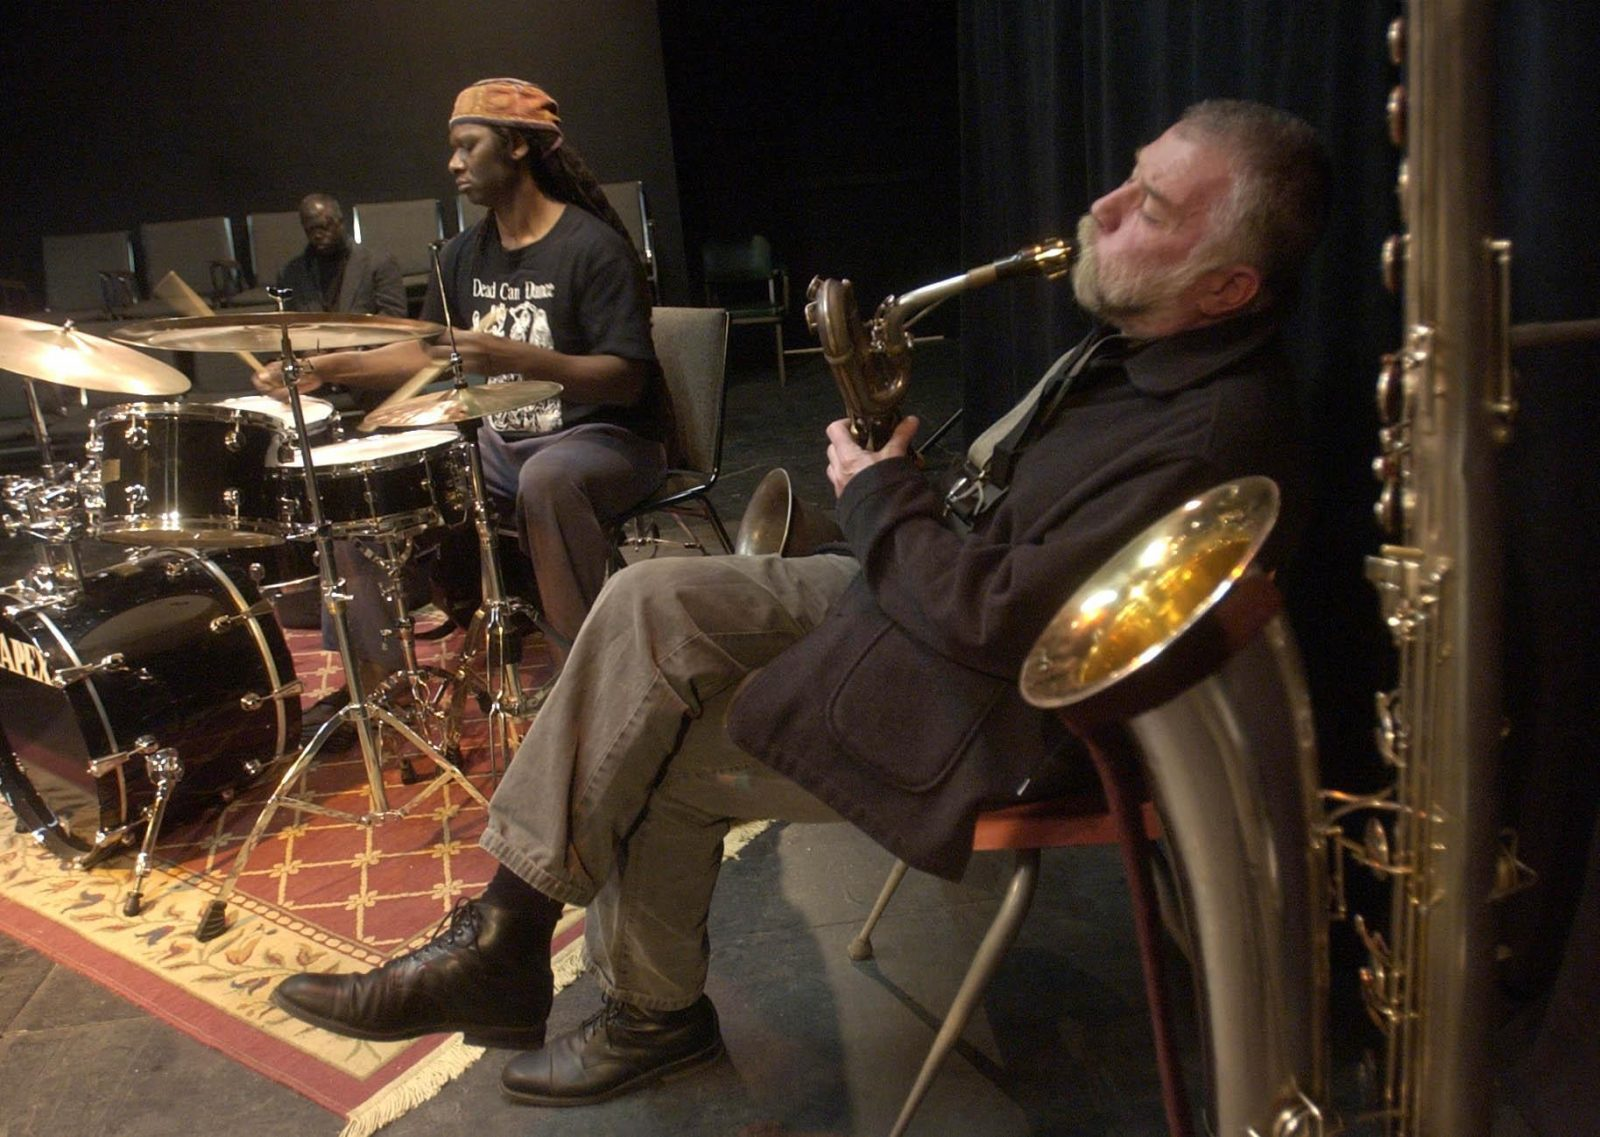 Saxophonist Peter Brotzmann and rummer Hamid Drake are pictured performing at Hallwalls Contemporary Arts Center in 2013. Hallwalls is one of many area cultural institutions to have benefited from NEA grants. (Derek Gee/Buffalo News file photo)